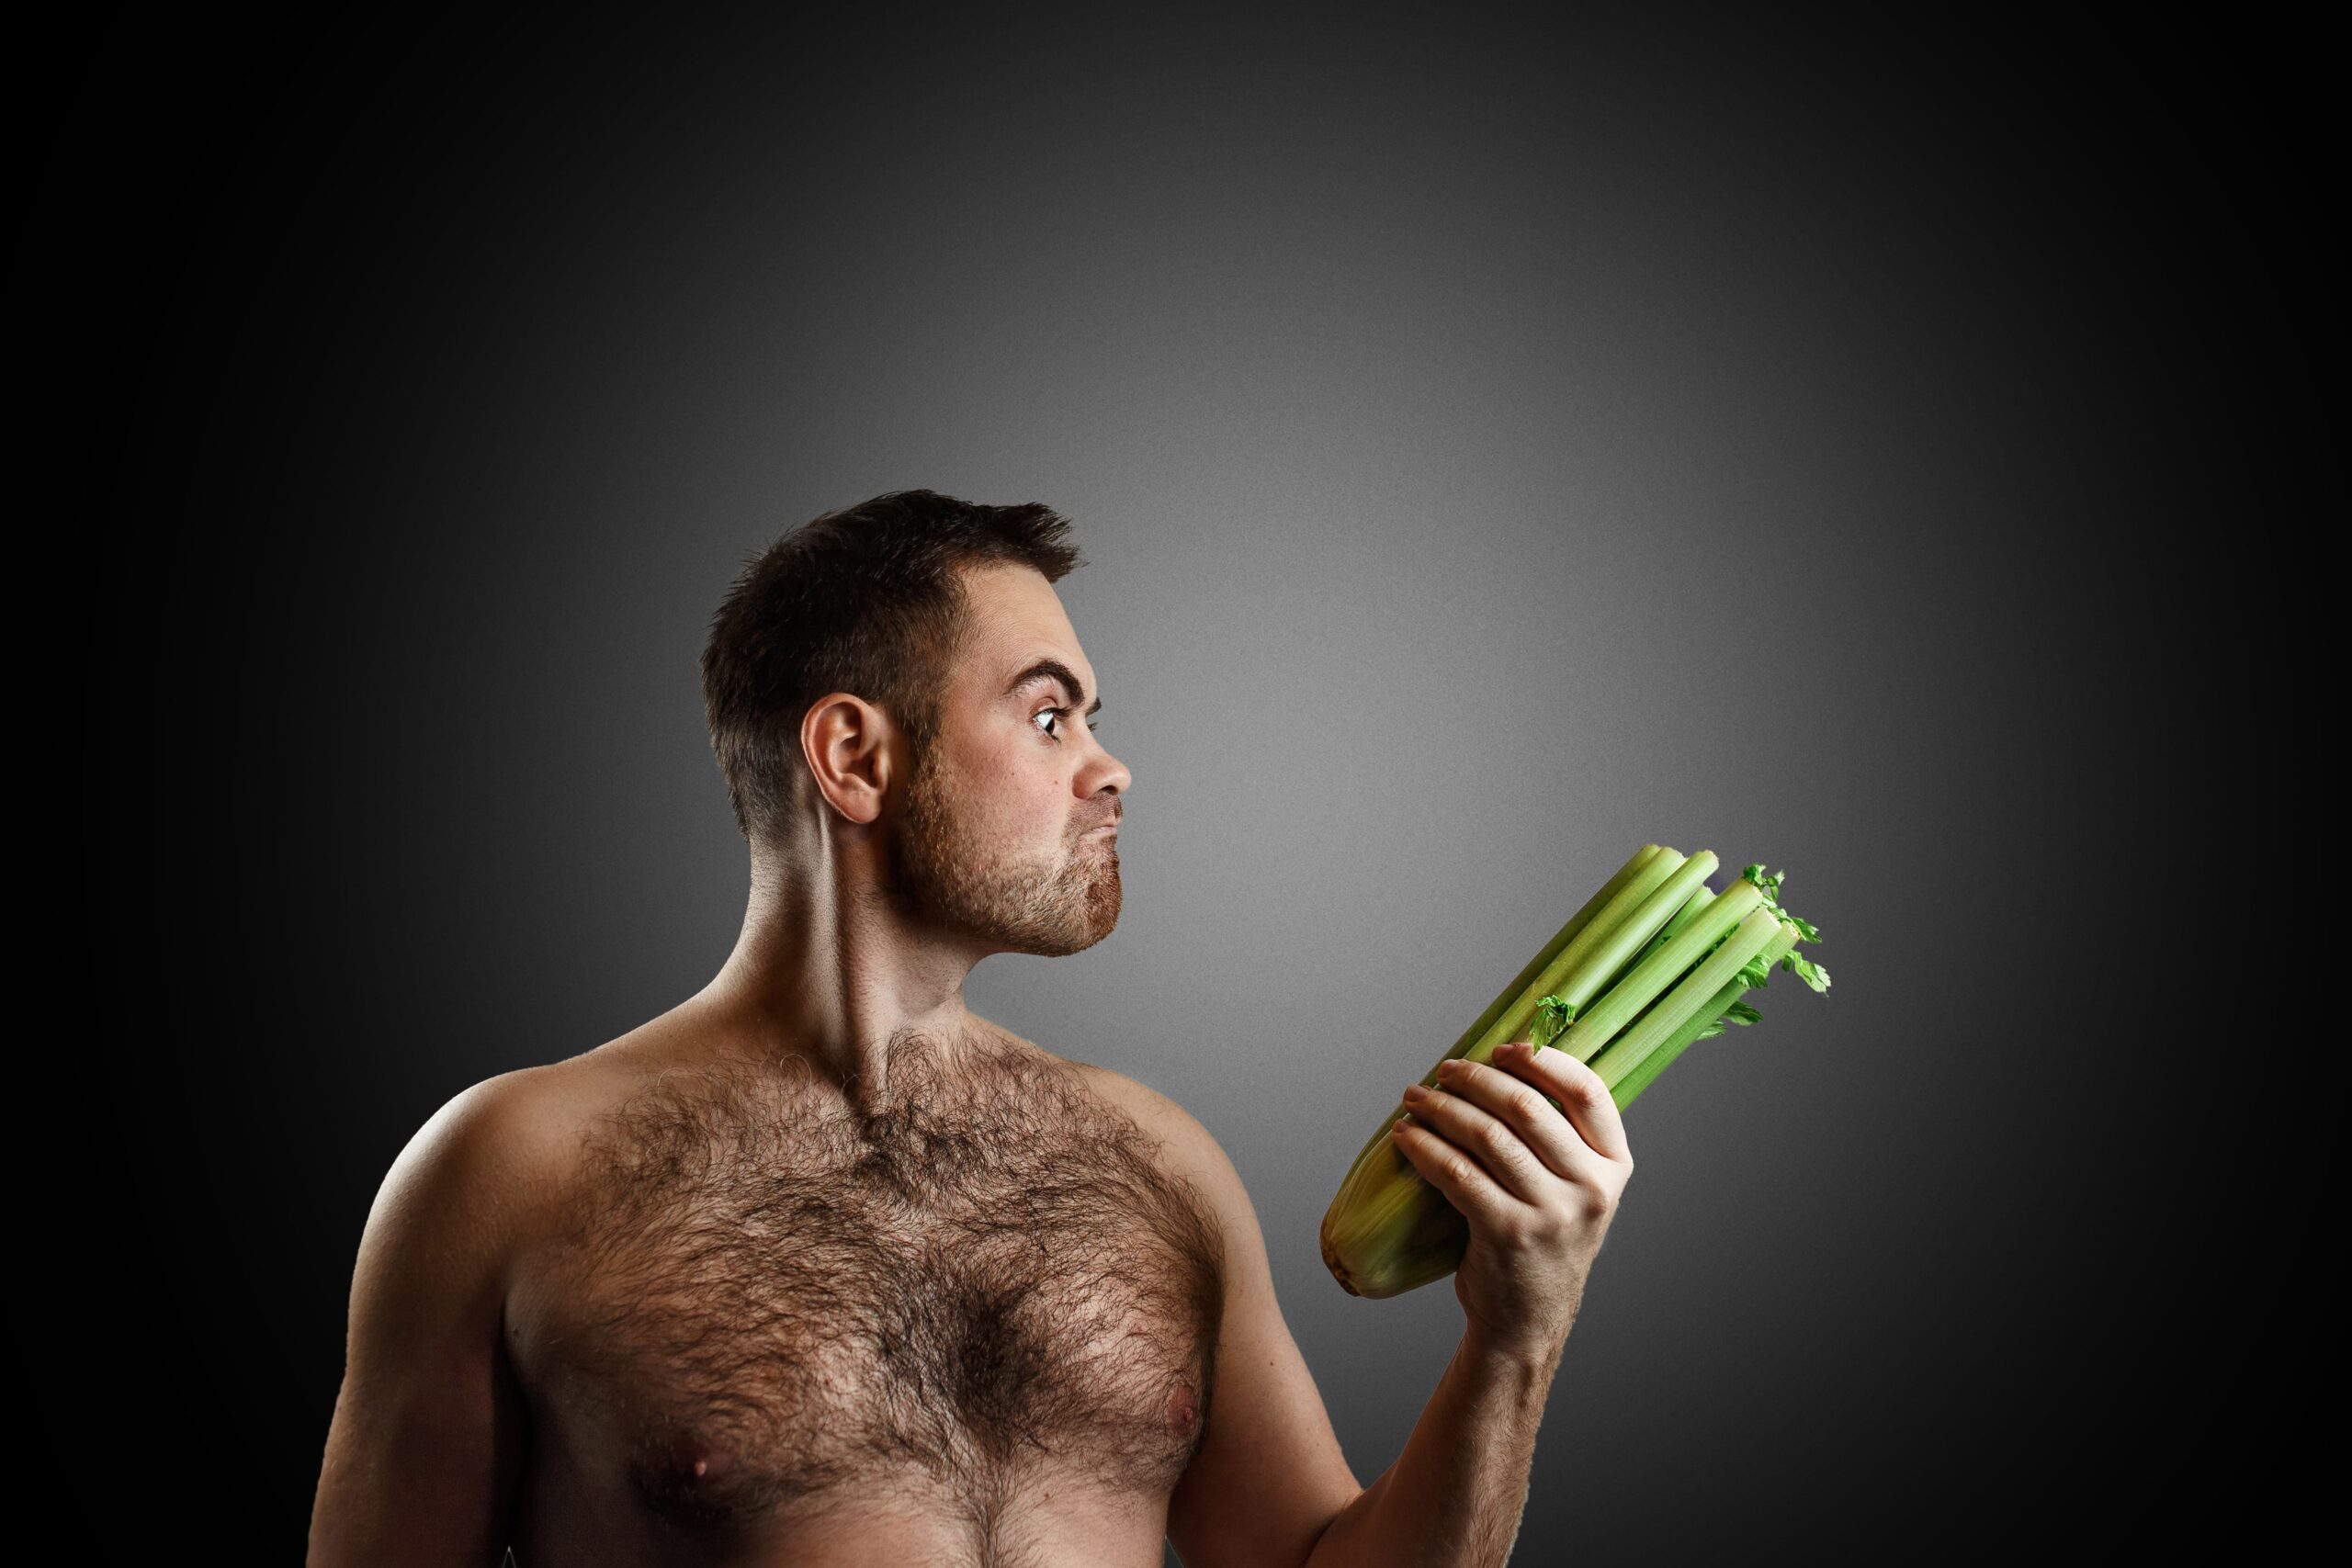 Low Fat Diets Linked To Decreased Testosterone Levels In Men